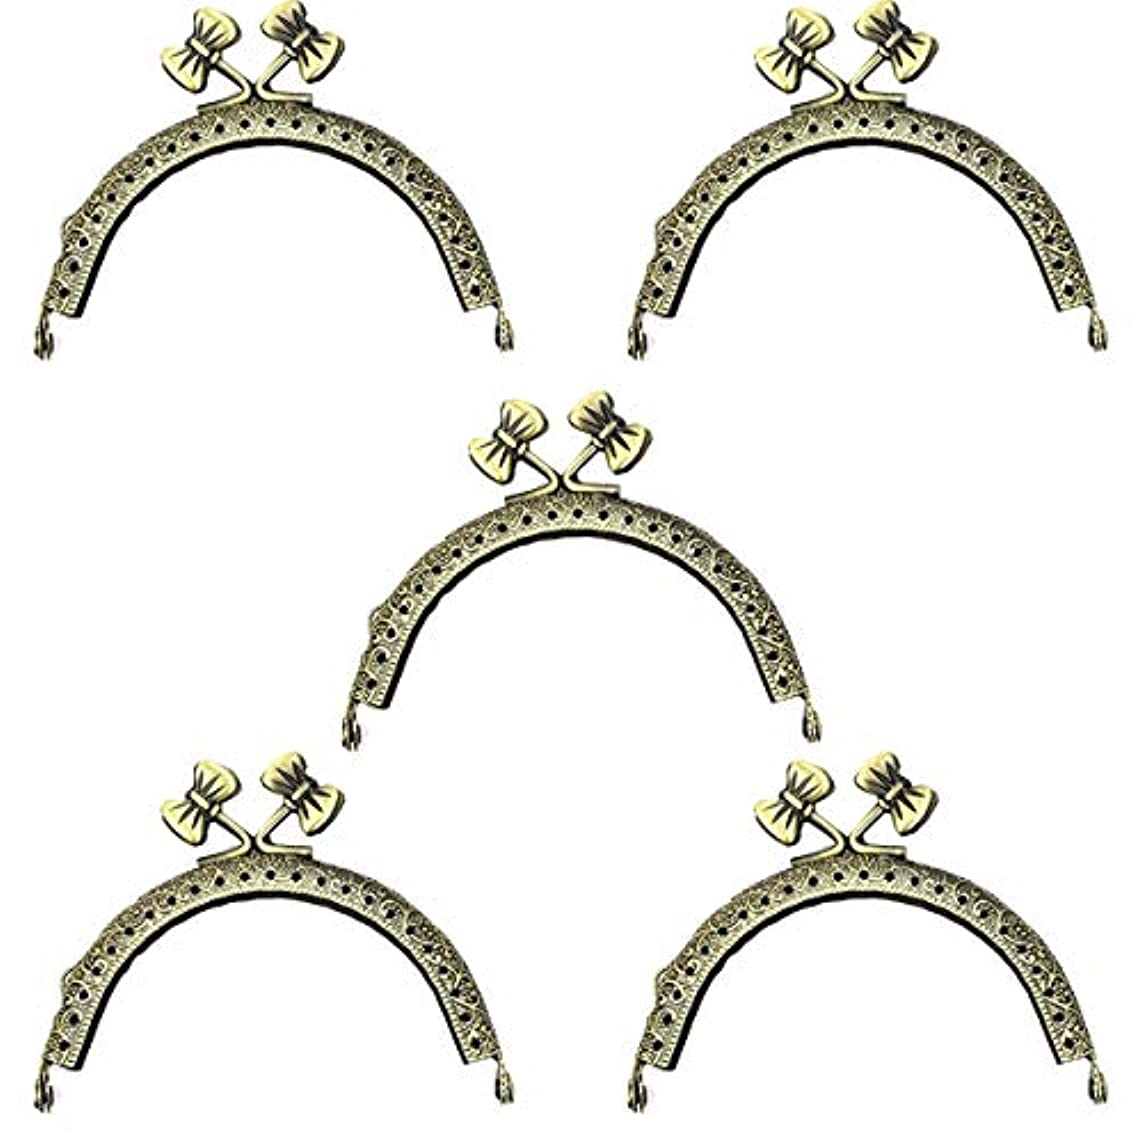 5pcs 85mm /3.3 inch Metal Frames Bow-Knot Snap Clasp for Small Coin Style Purse Antique Bronze Tone (Bronze)